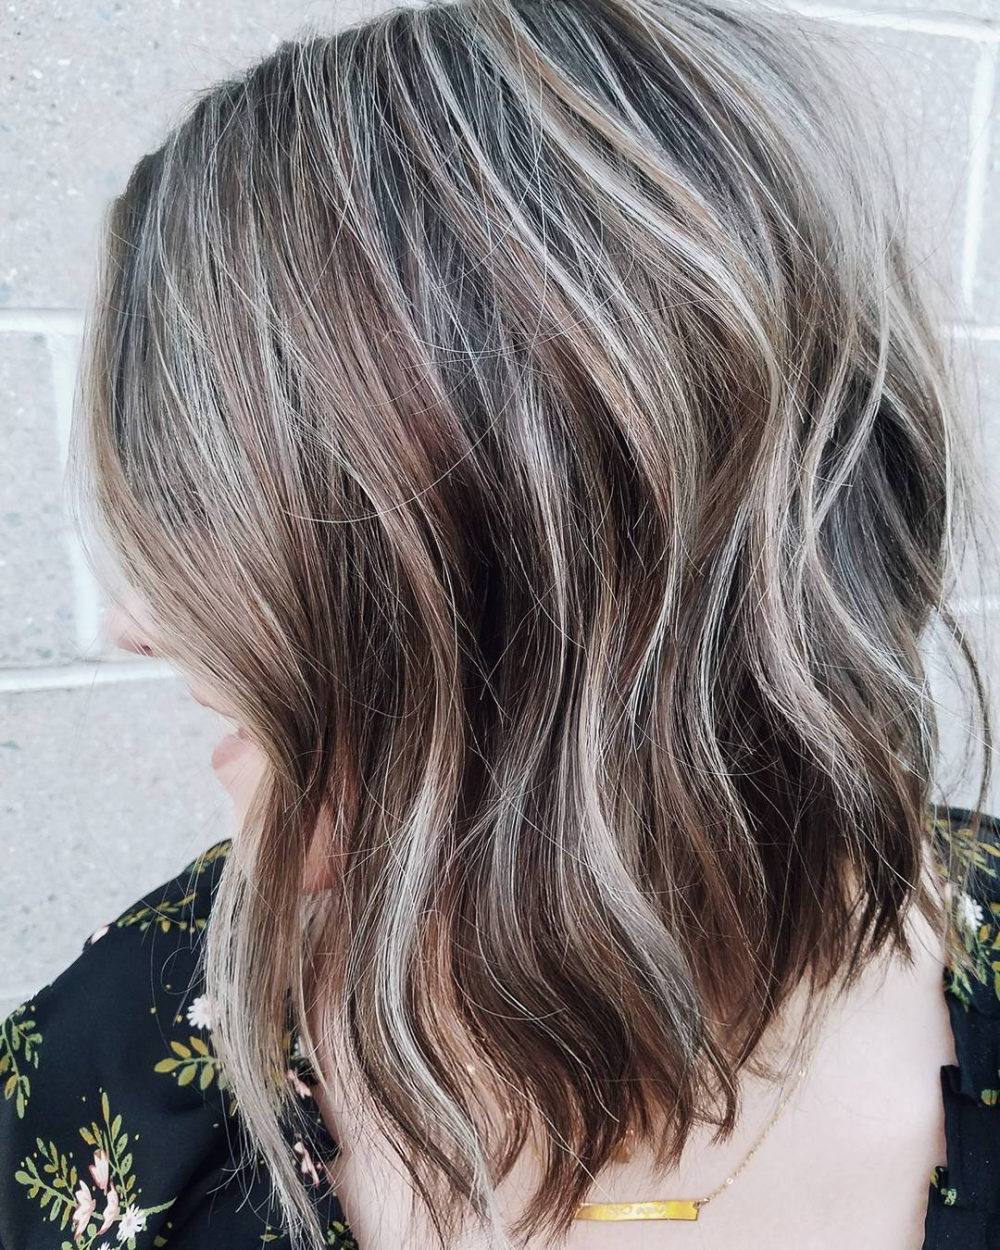 43 Perfect Short Hairstyles For Fine Hair In 2019 Intended For Recent Funky Medium Haircuts For Fine Hair (Gallery 8 of 20)